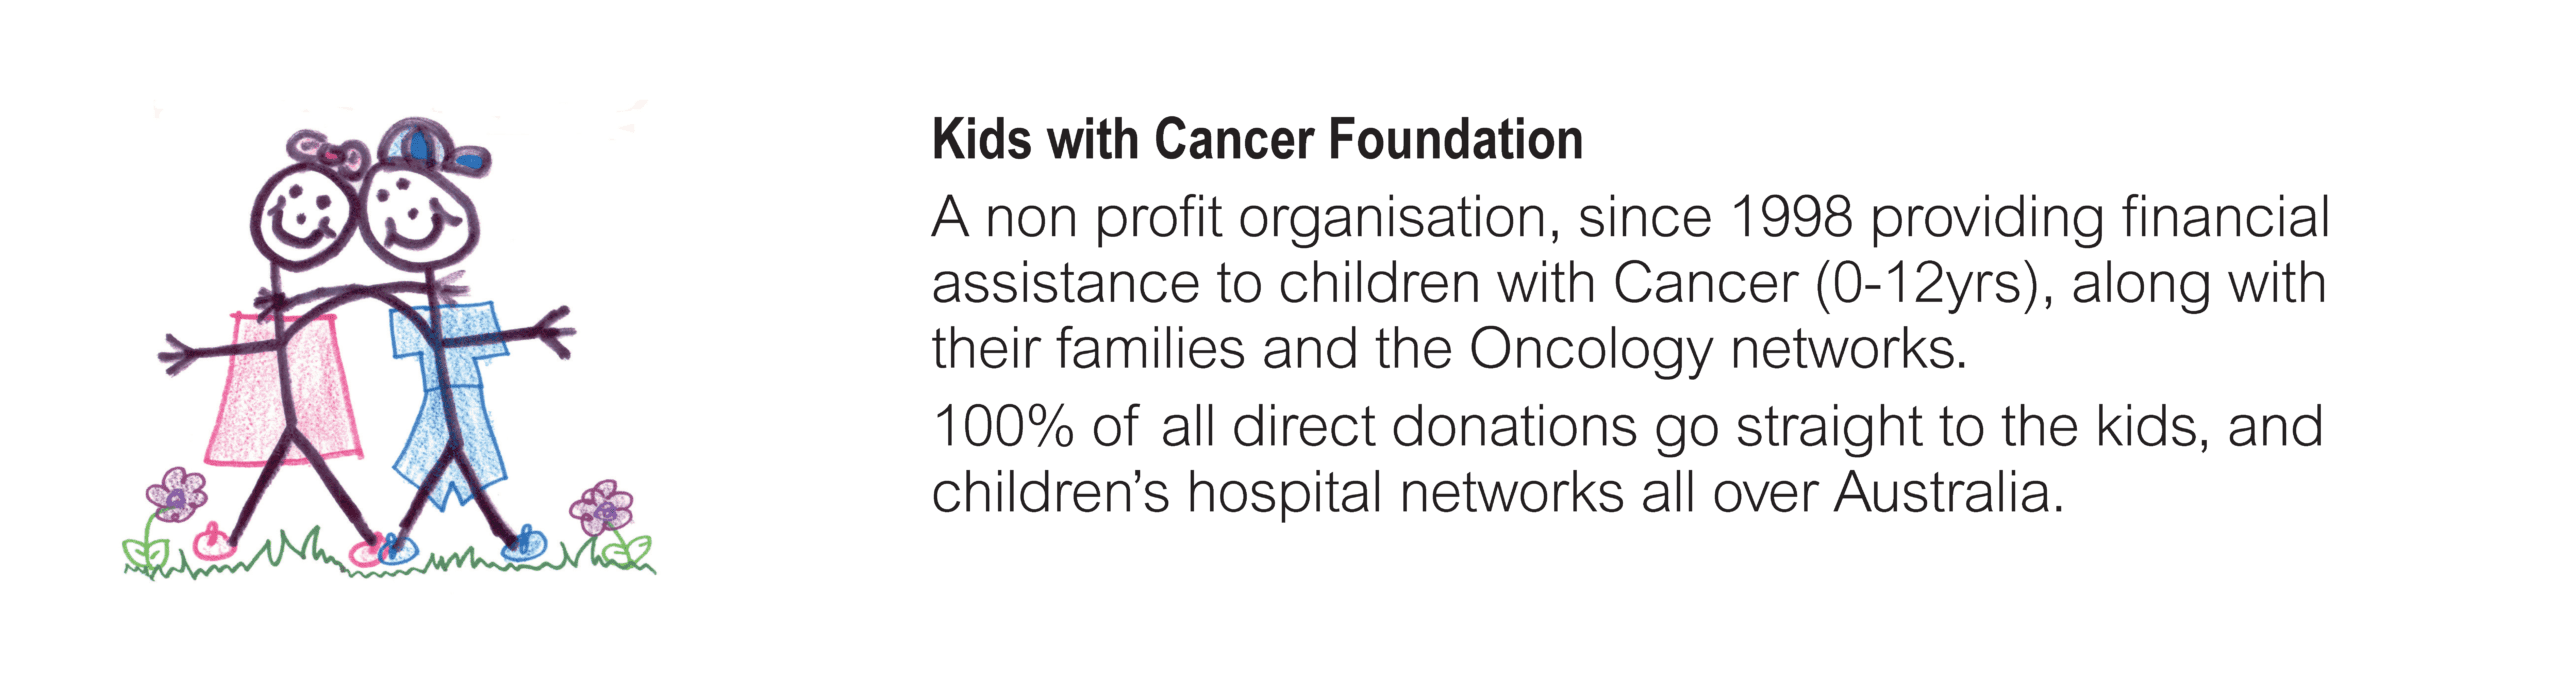 Charity_Kids with Cancer Foundation_colour